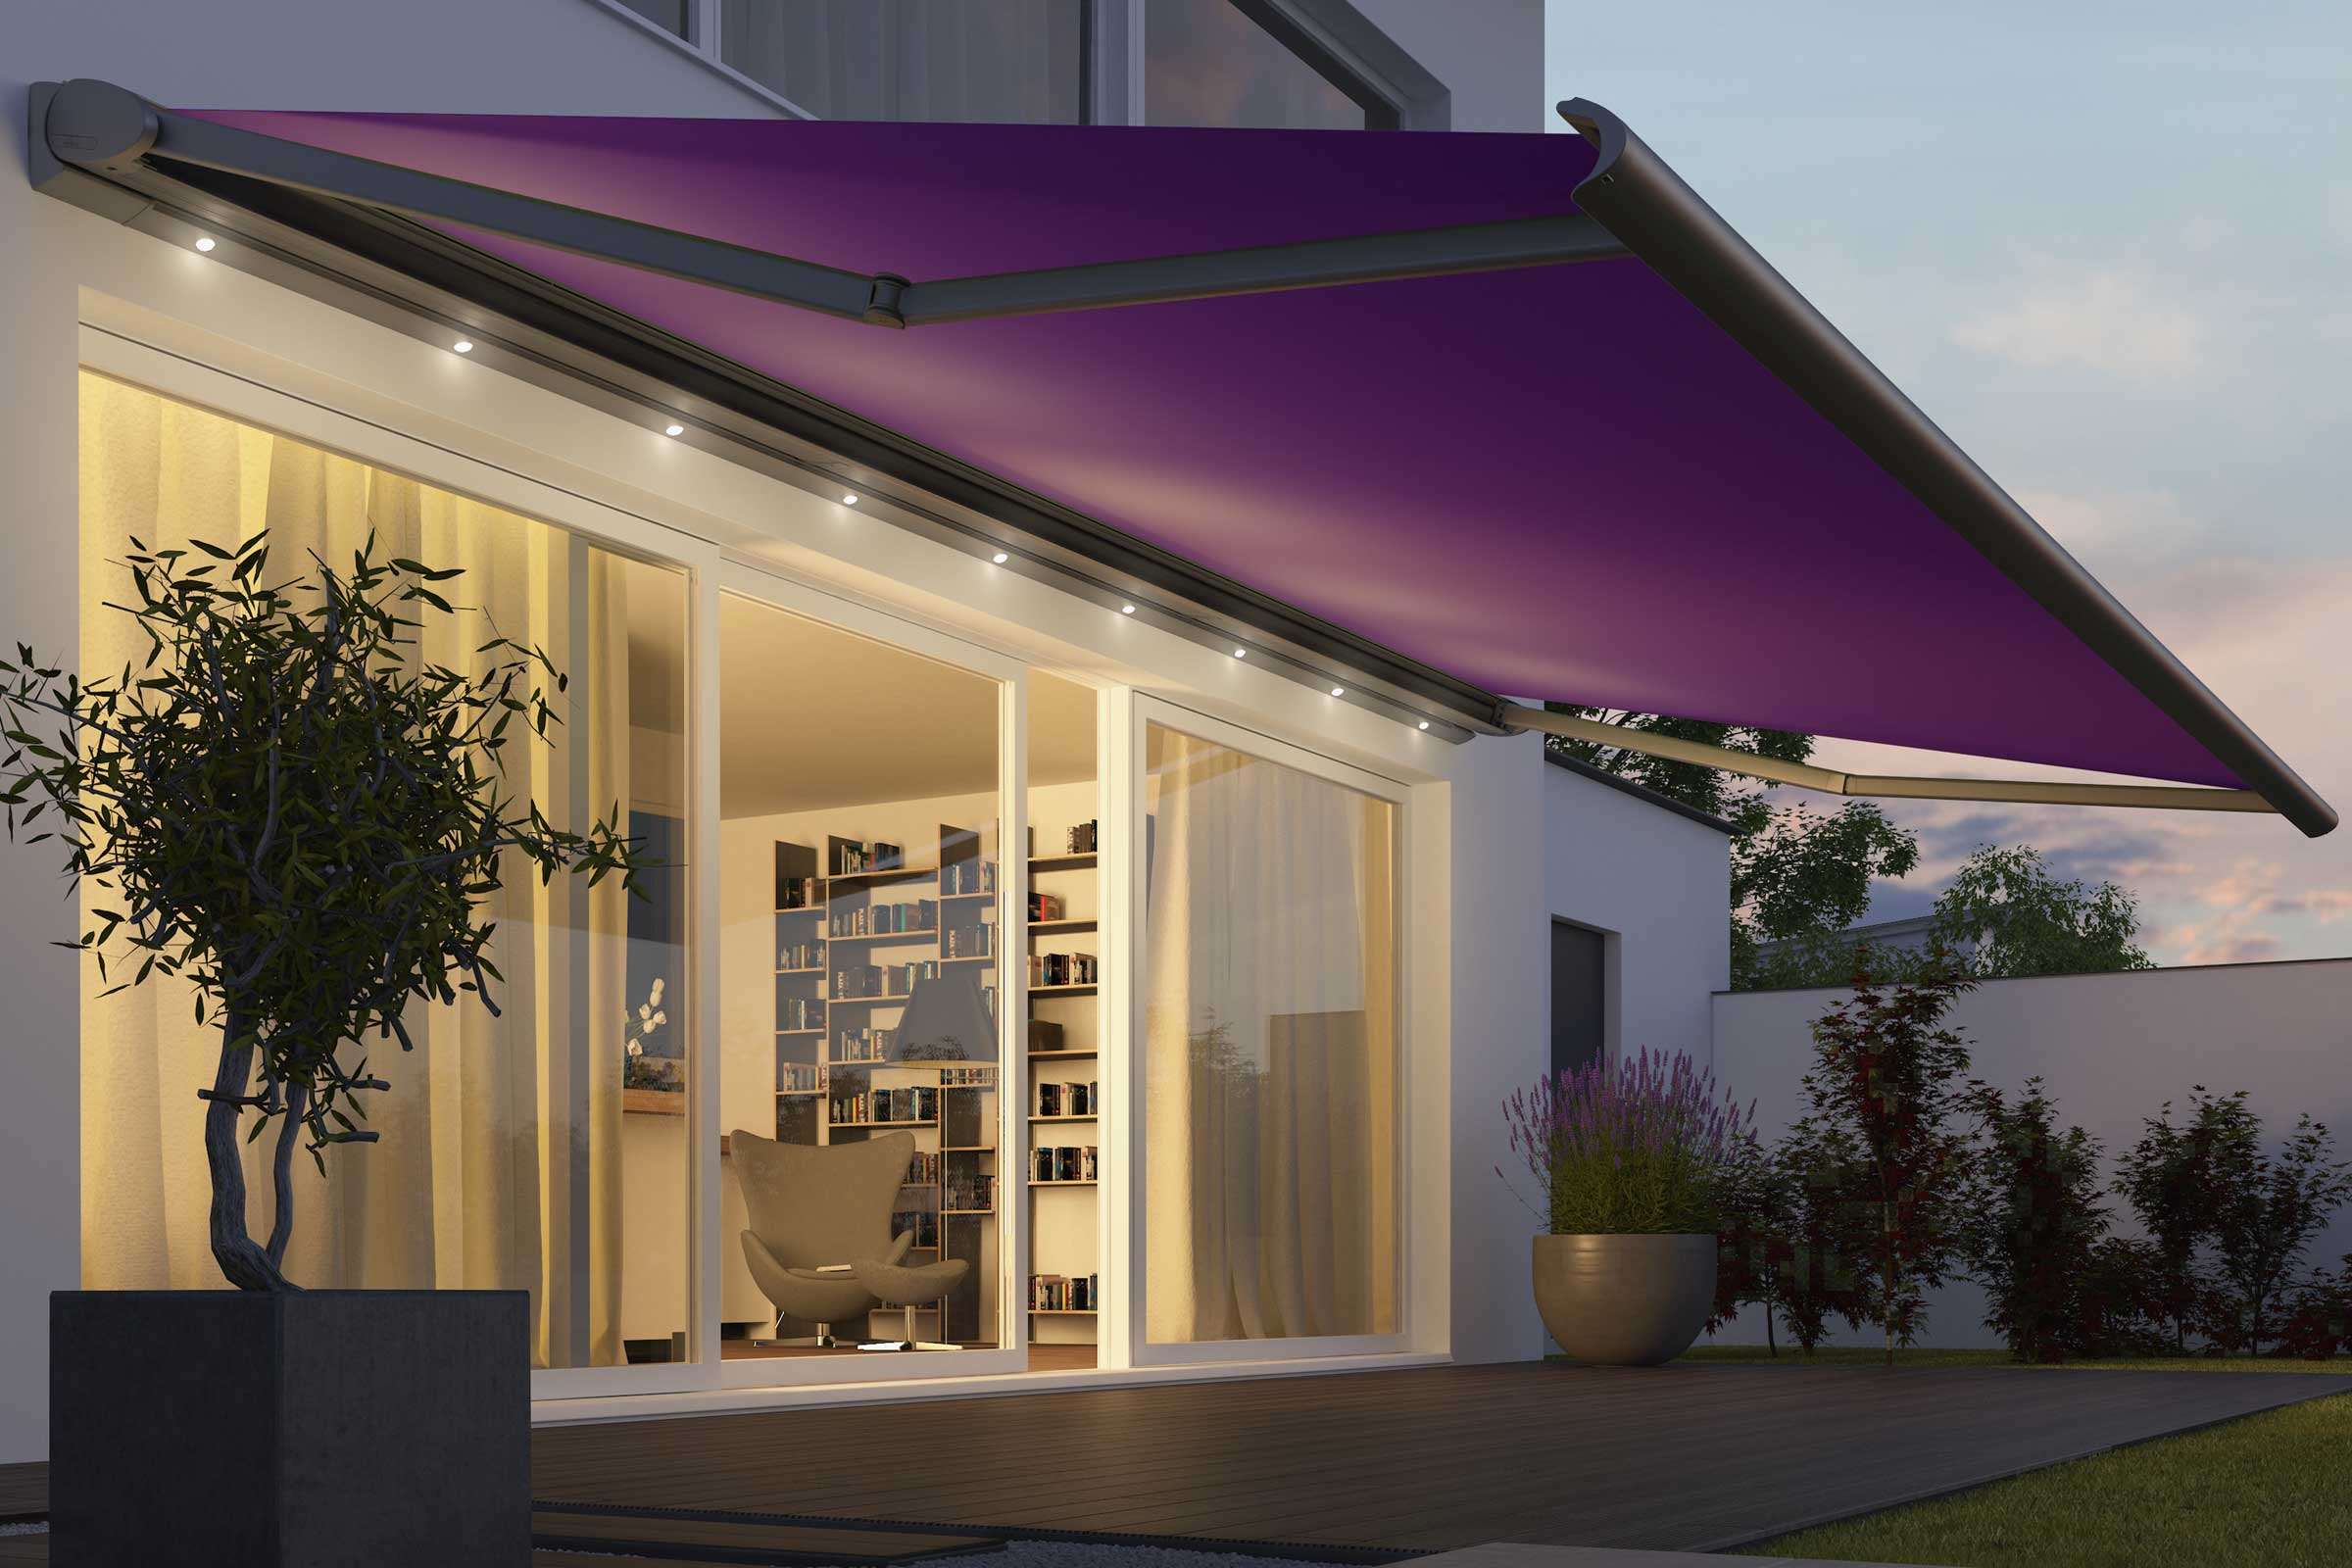 Purple awning